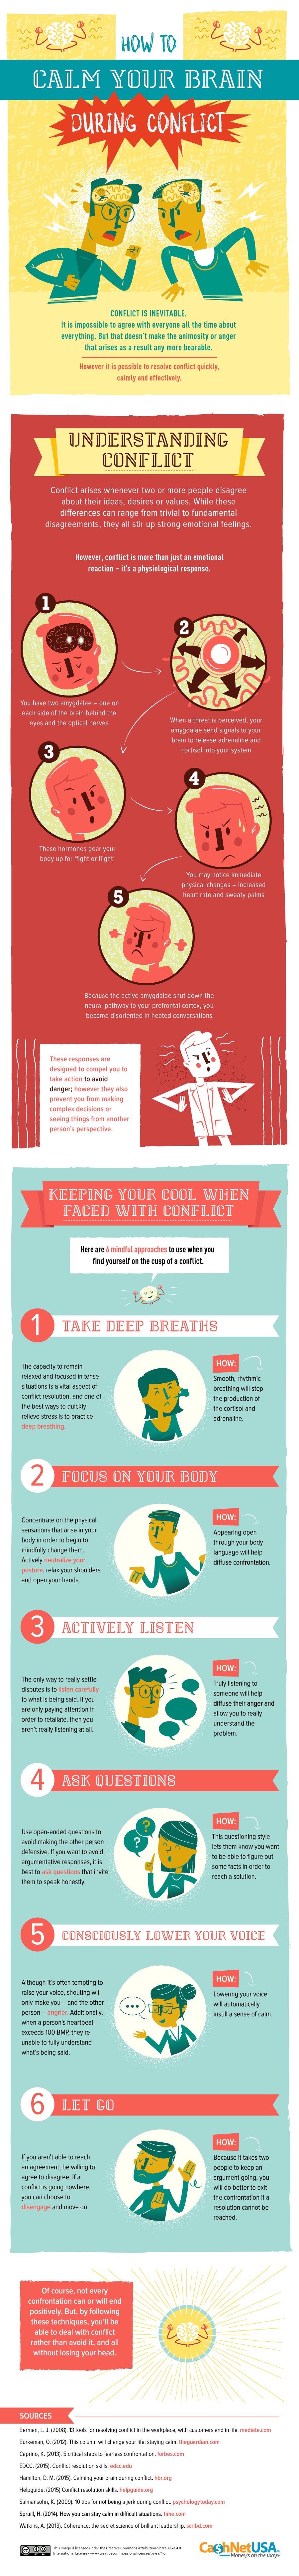 How To Calm Your Brain During Conflict (INFOGRAPHIC)